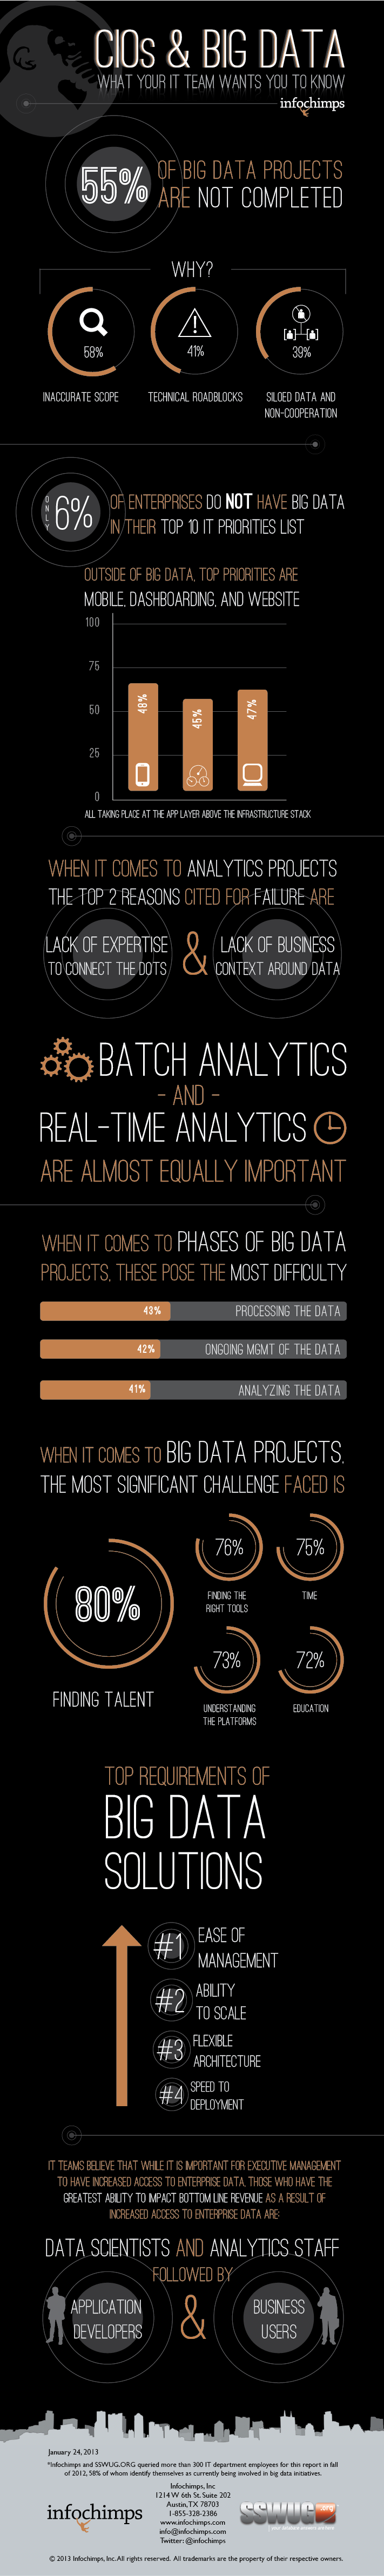 Big-Data-Infographic-Report